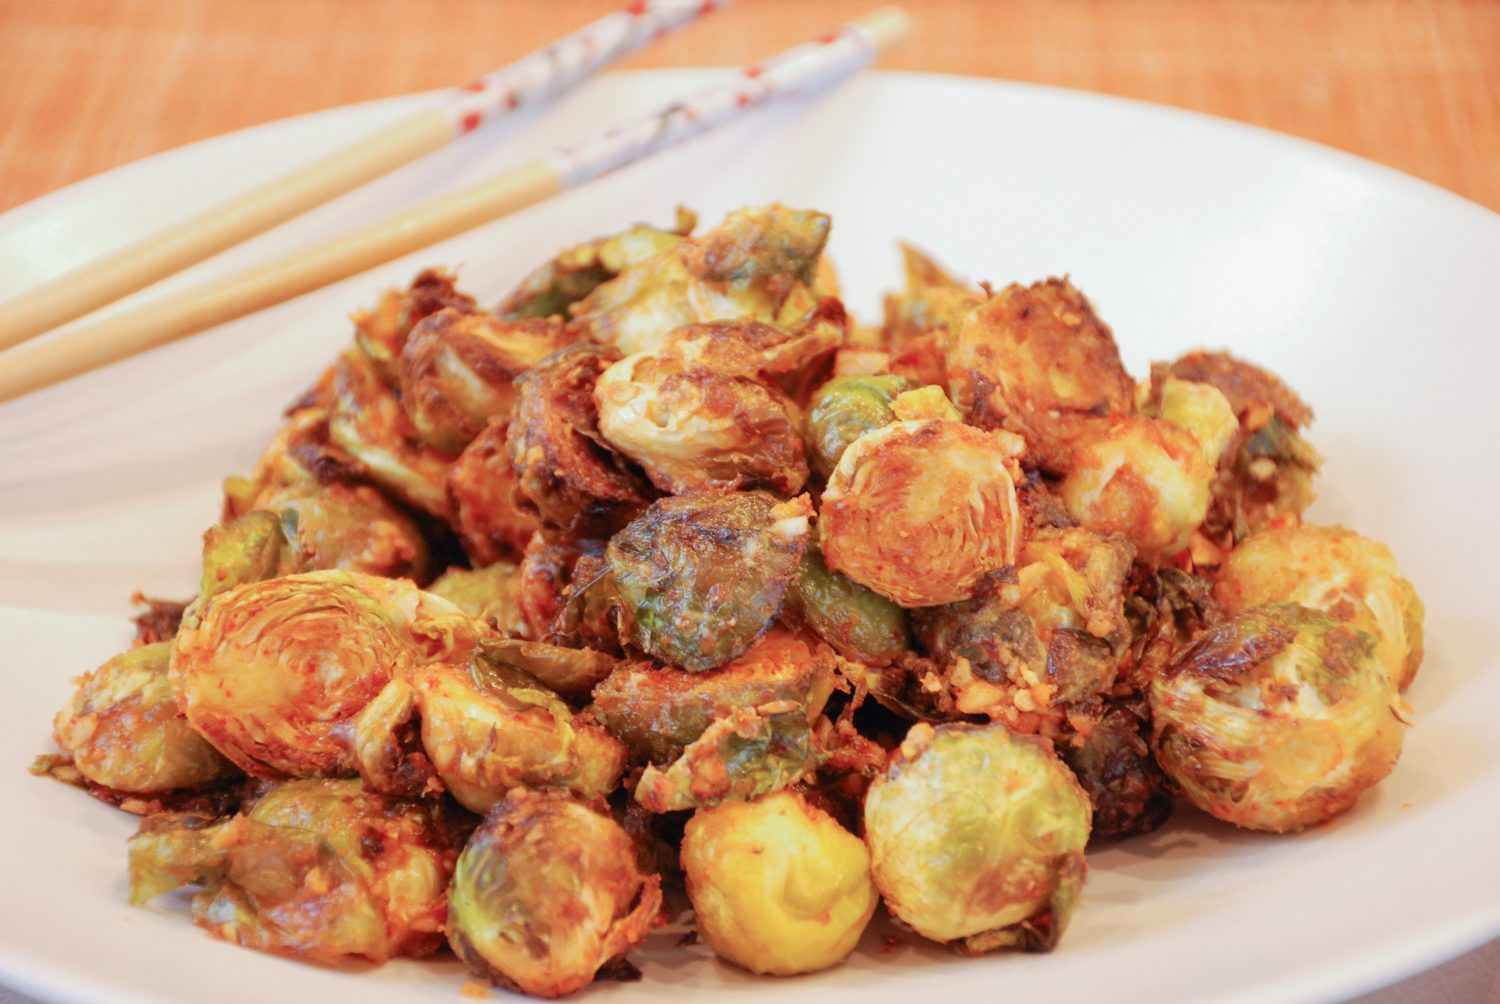 Roasted Brussels Sprouts in a Sriracha Peanut Sauce